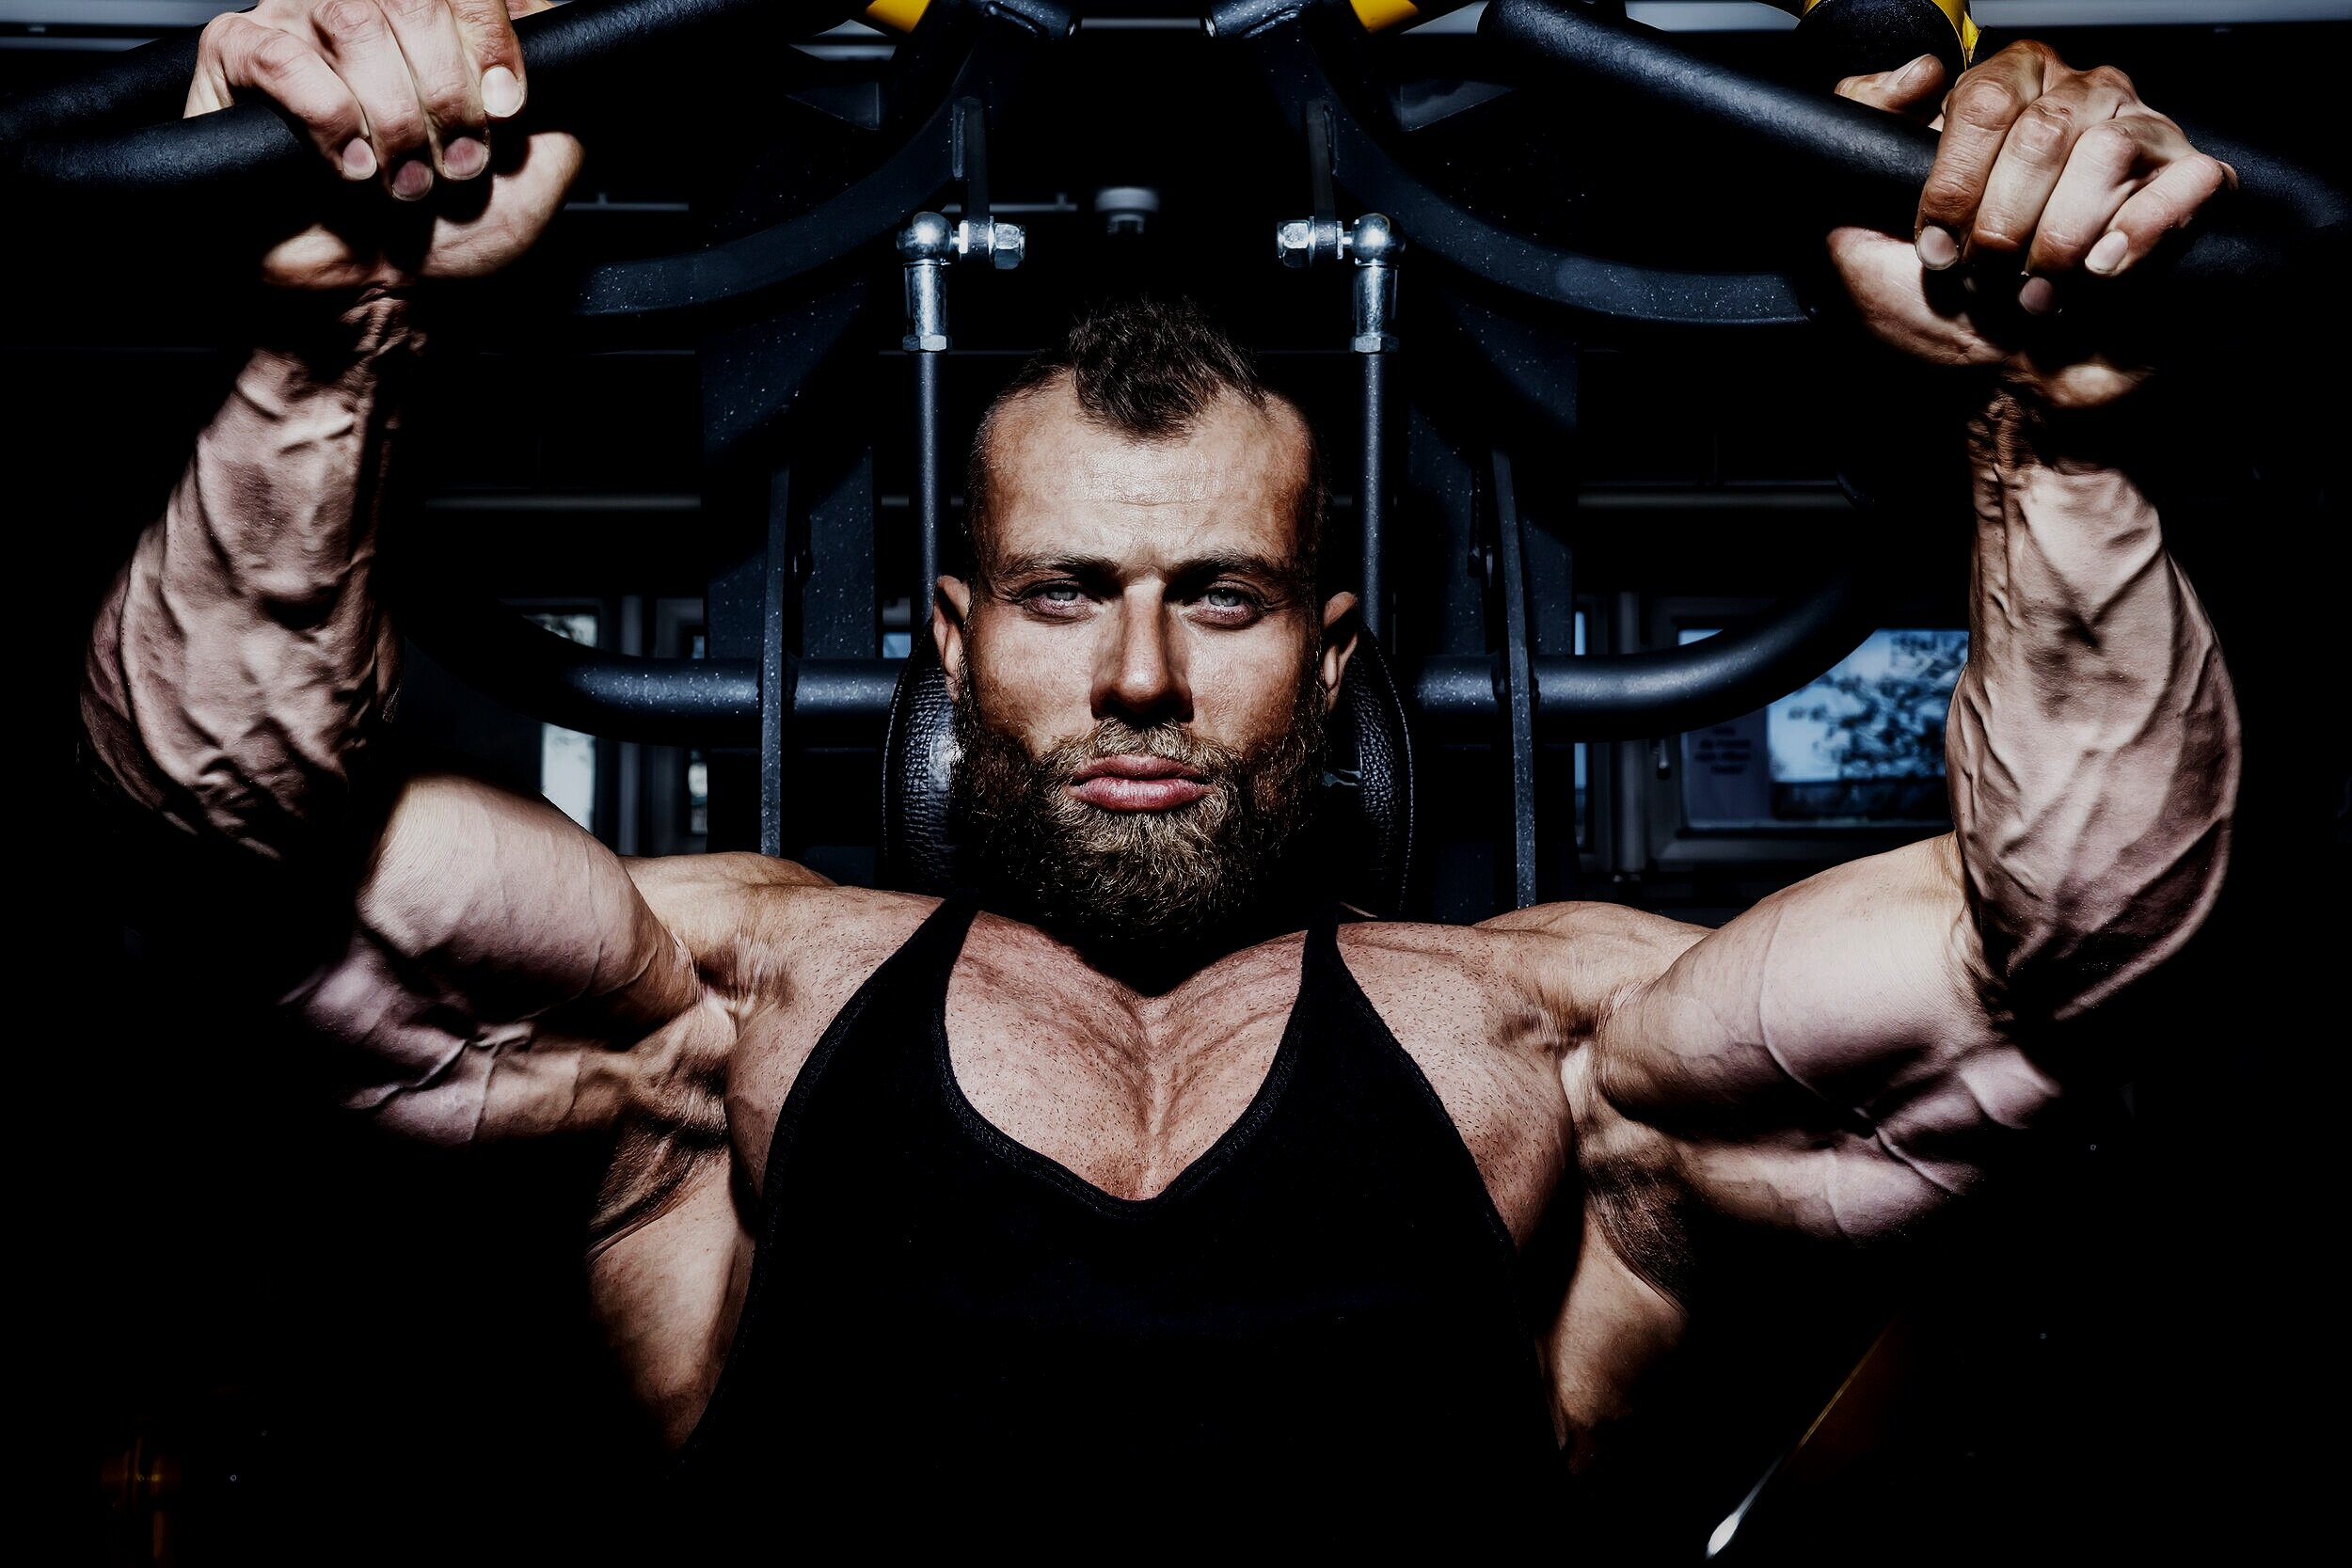 WHAT CREATINE IS RIGHT FOR YOU? - How the pick the right creatine for your needs!